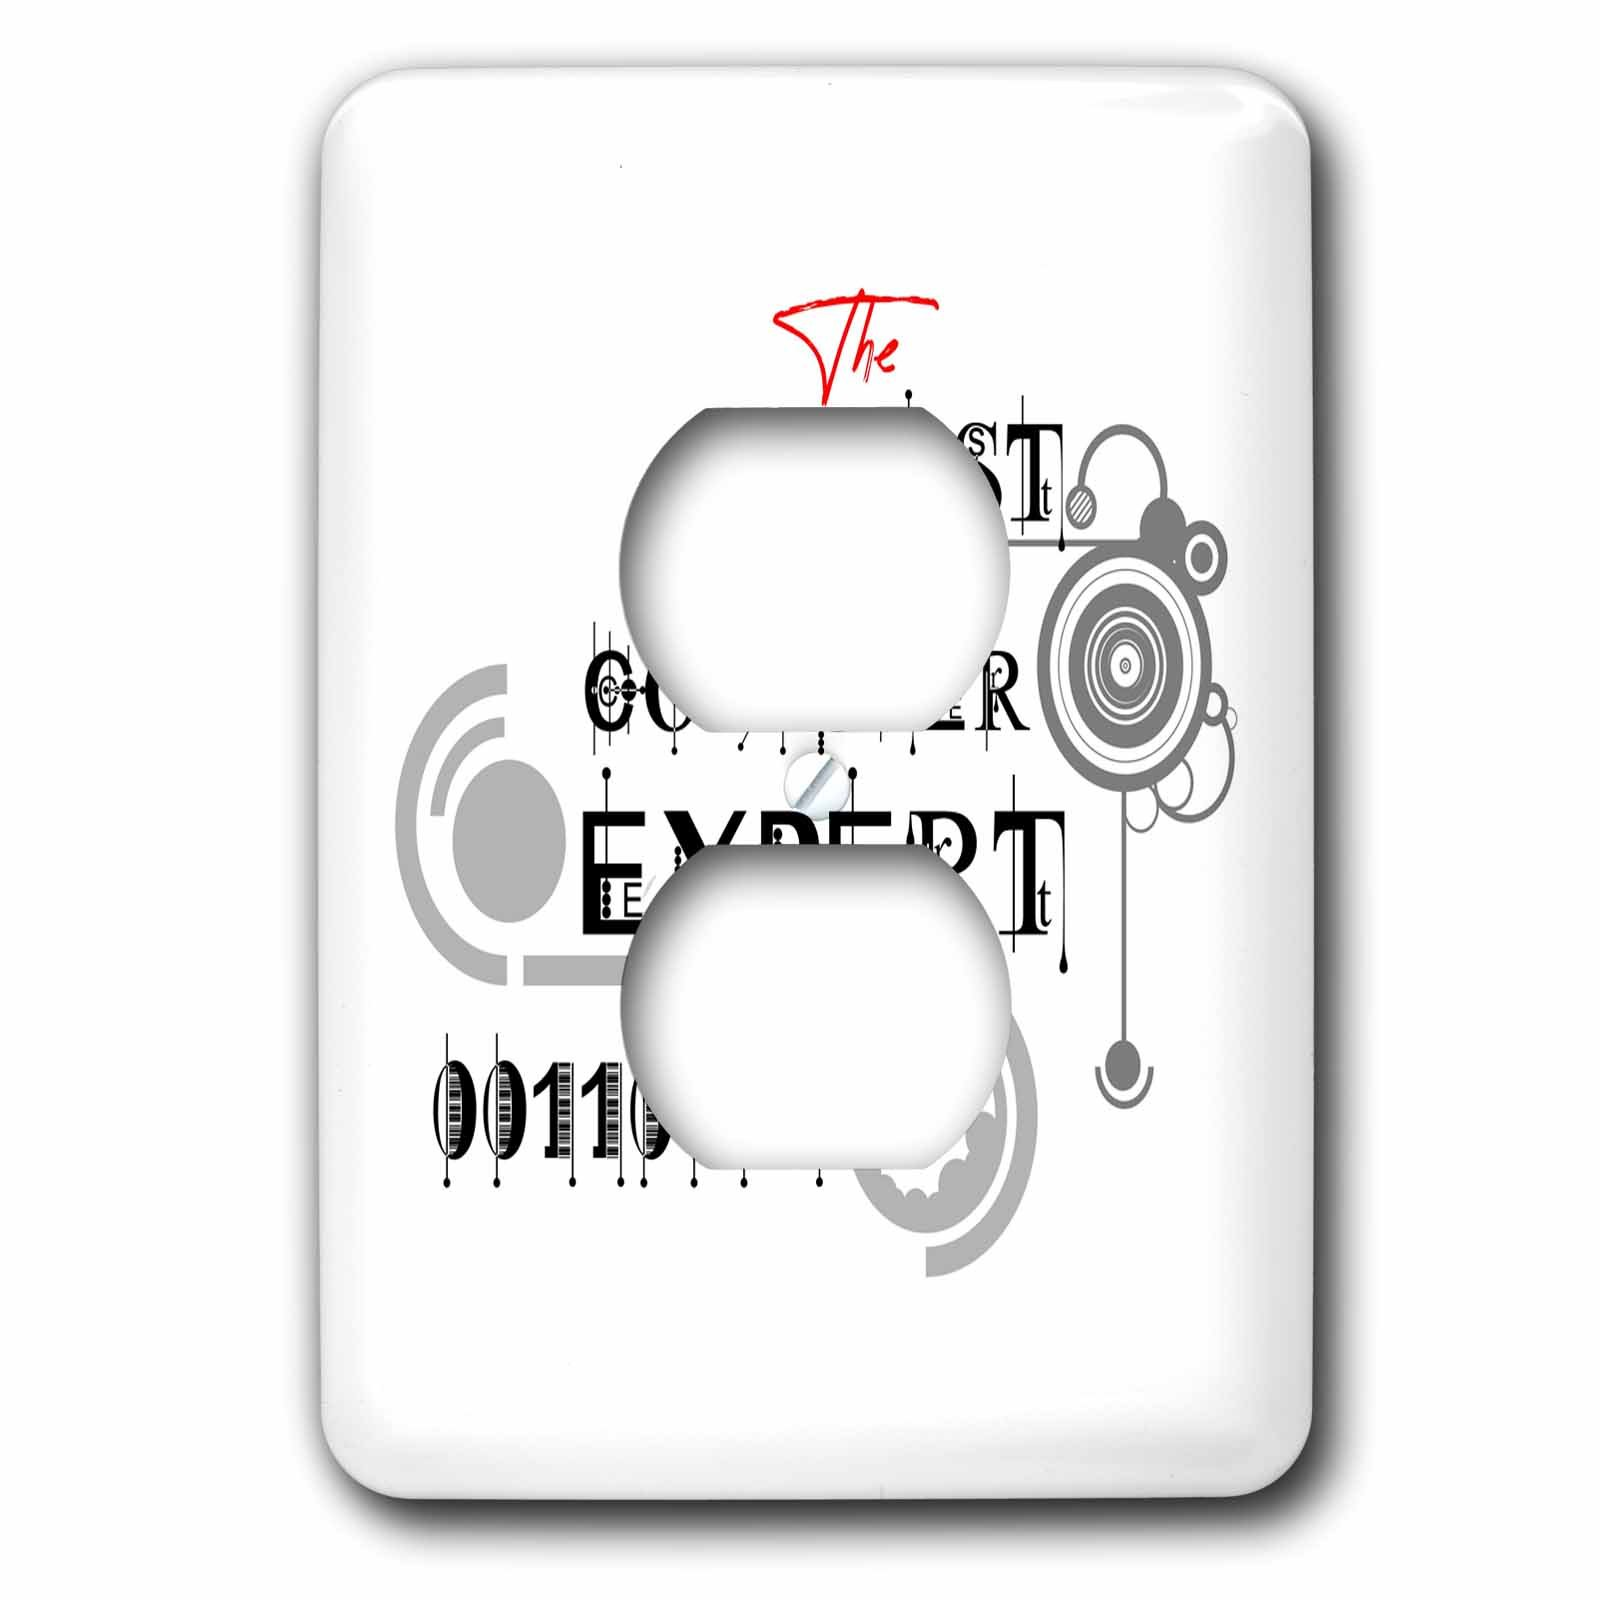 3dRose Alexis Design - Best Professional Ever - Impressive text The Best Computer Expert, geometry shapes on white - Light Switch Covers - 2 plug outlet cover (lsp_286488_6)